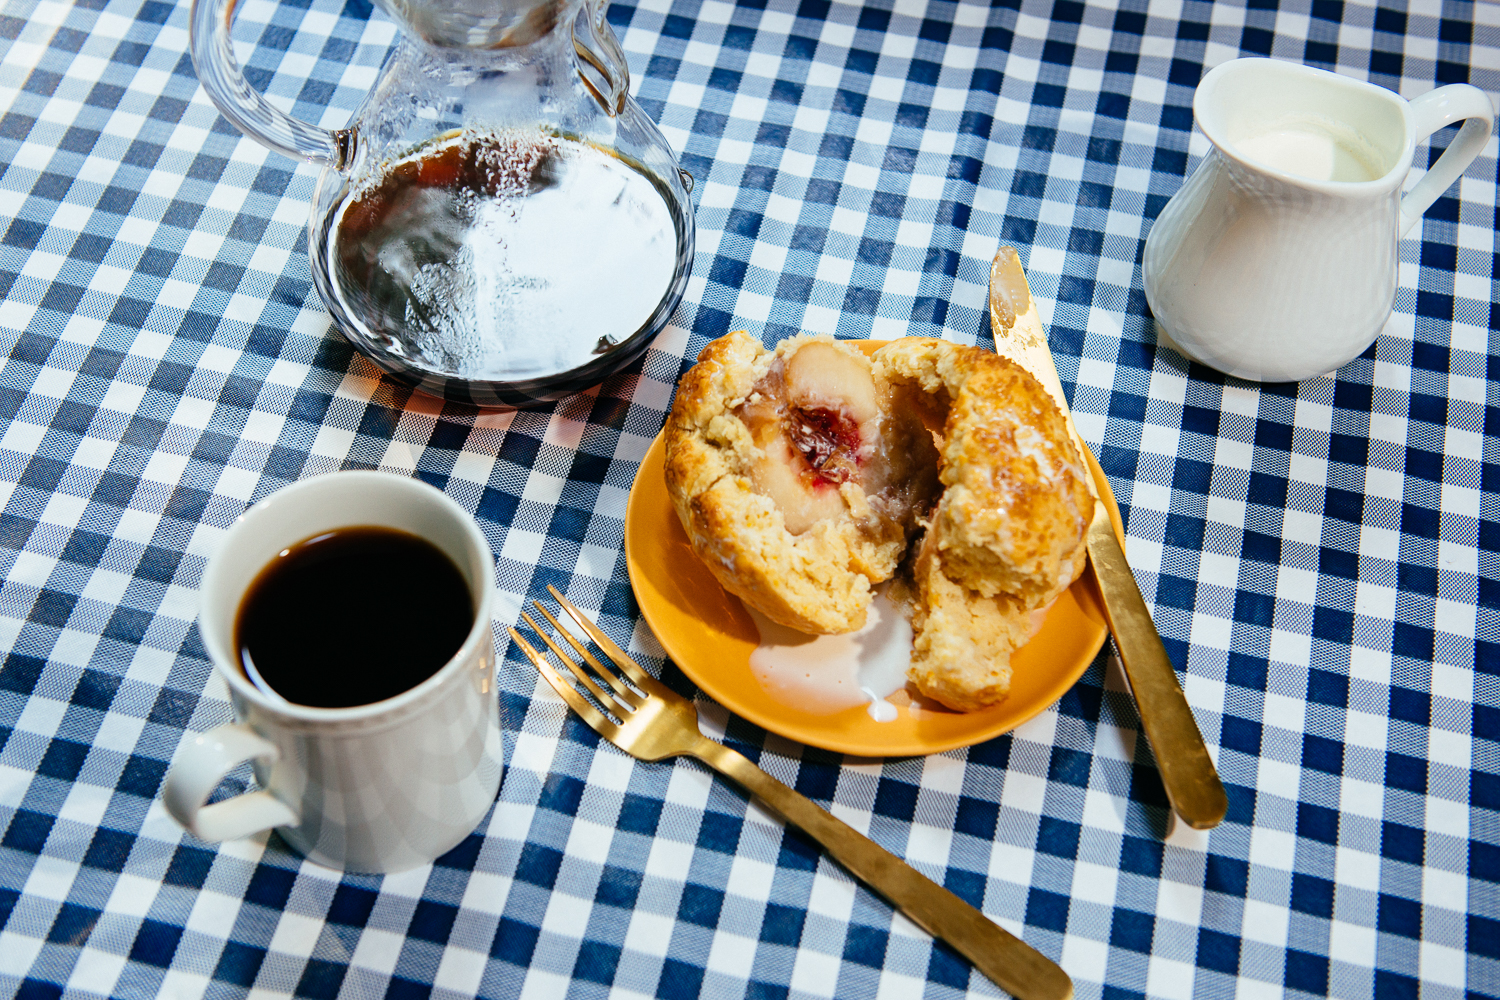 White peaches inside a biscuit with heavy cream.